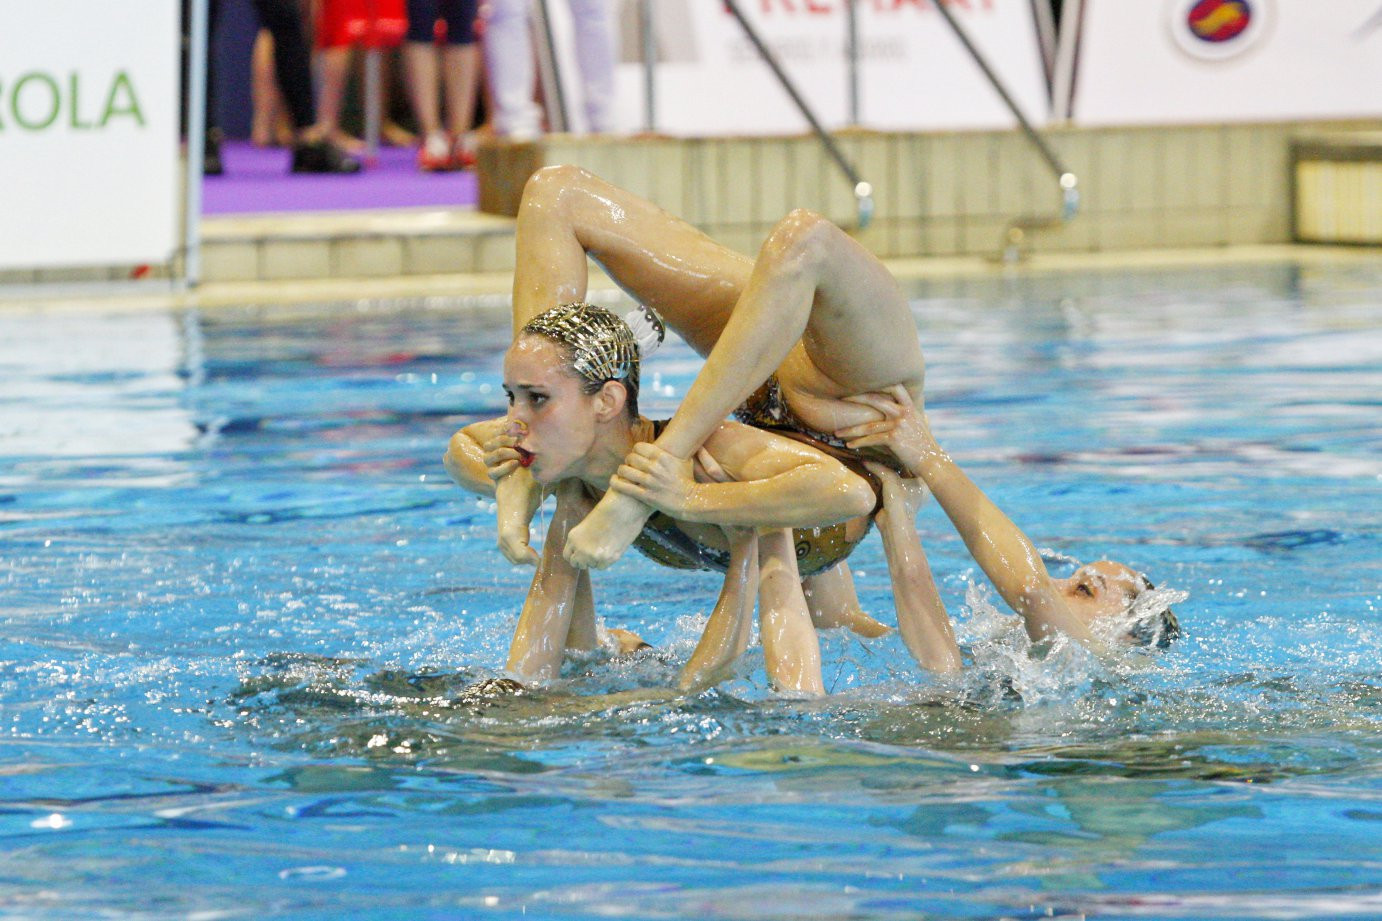 Two gold medals were won on the final day of competition ©FINA